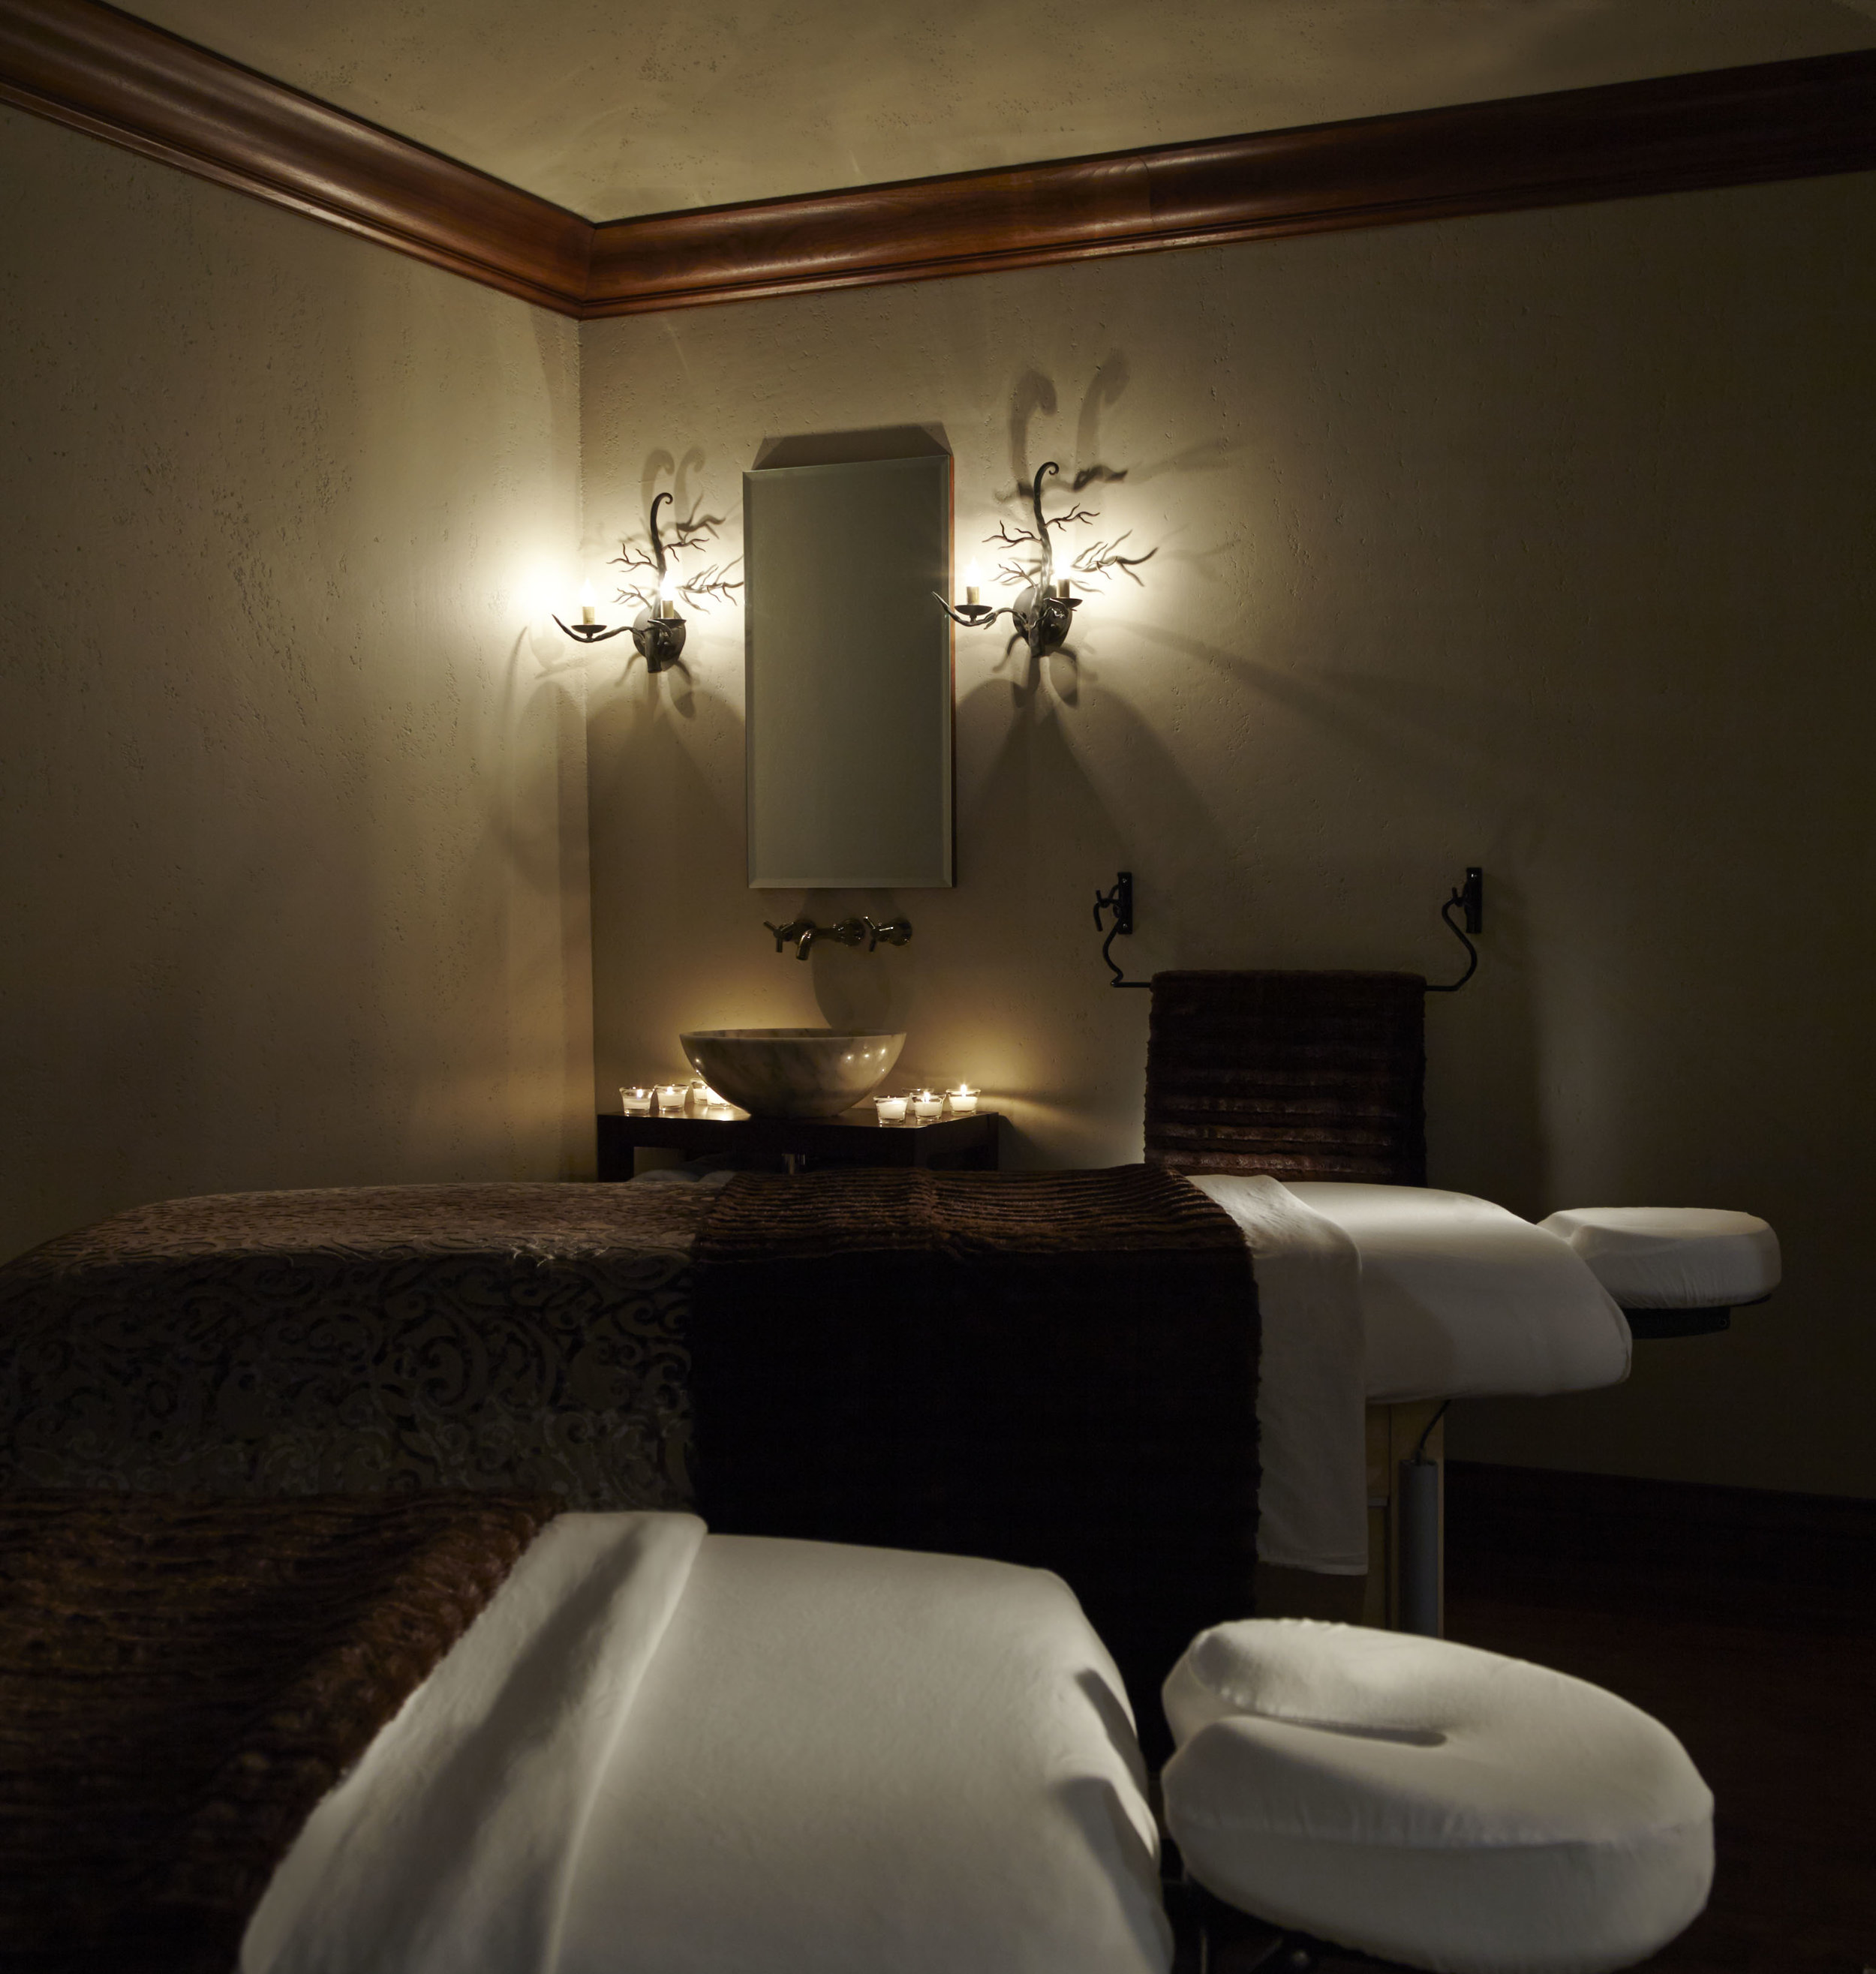 Delmonte_spa_Treatmentroom4.jpg